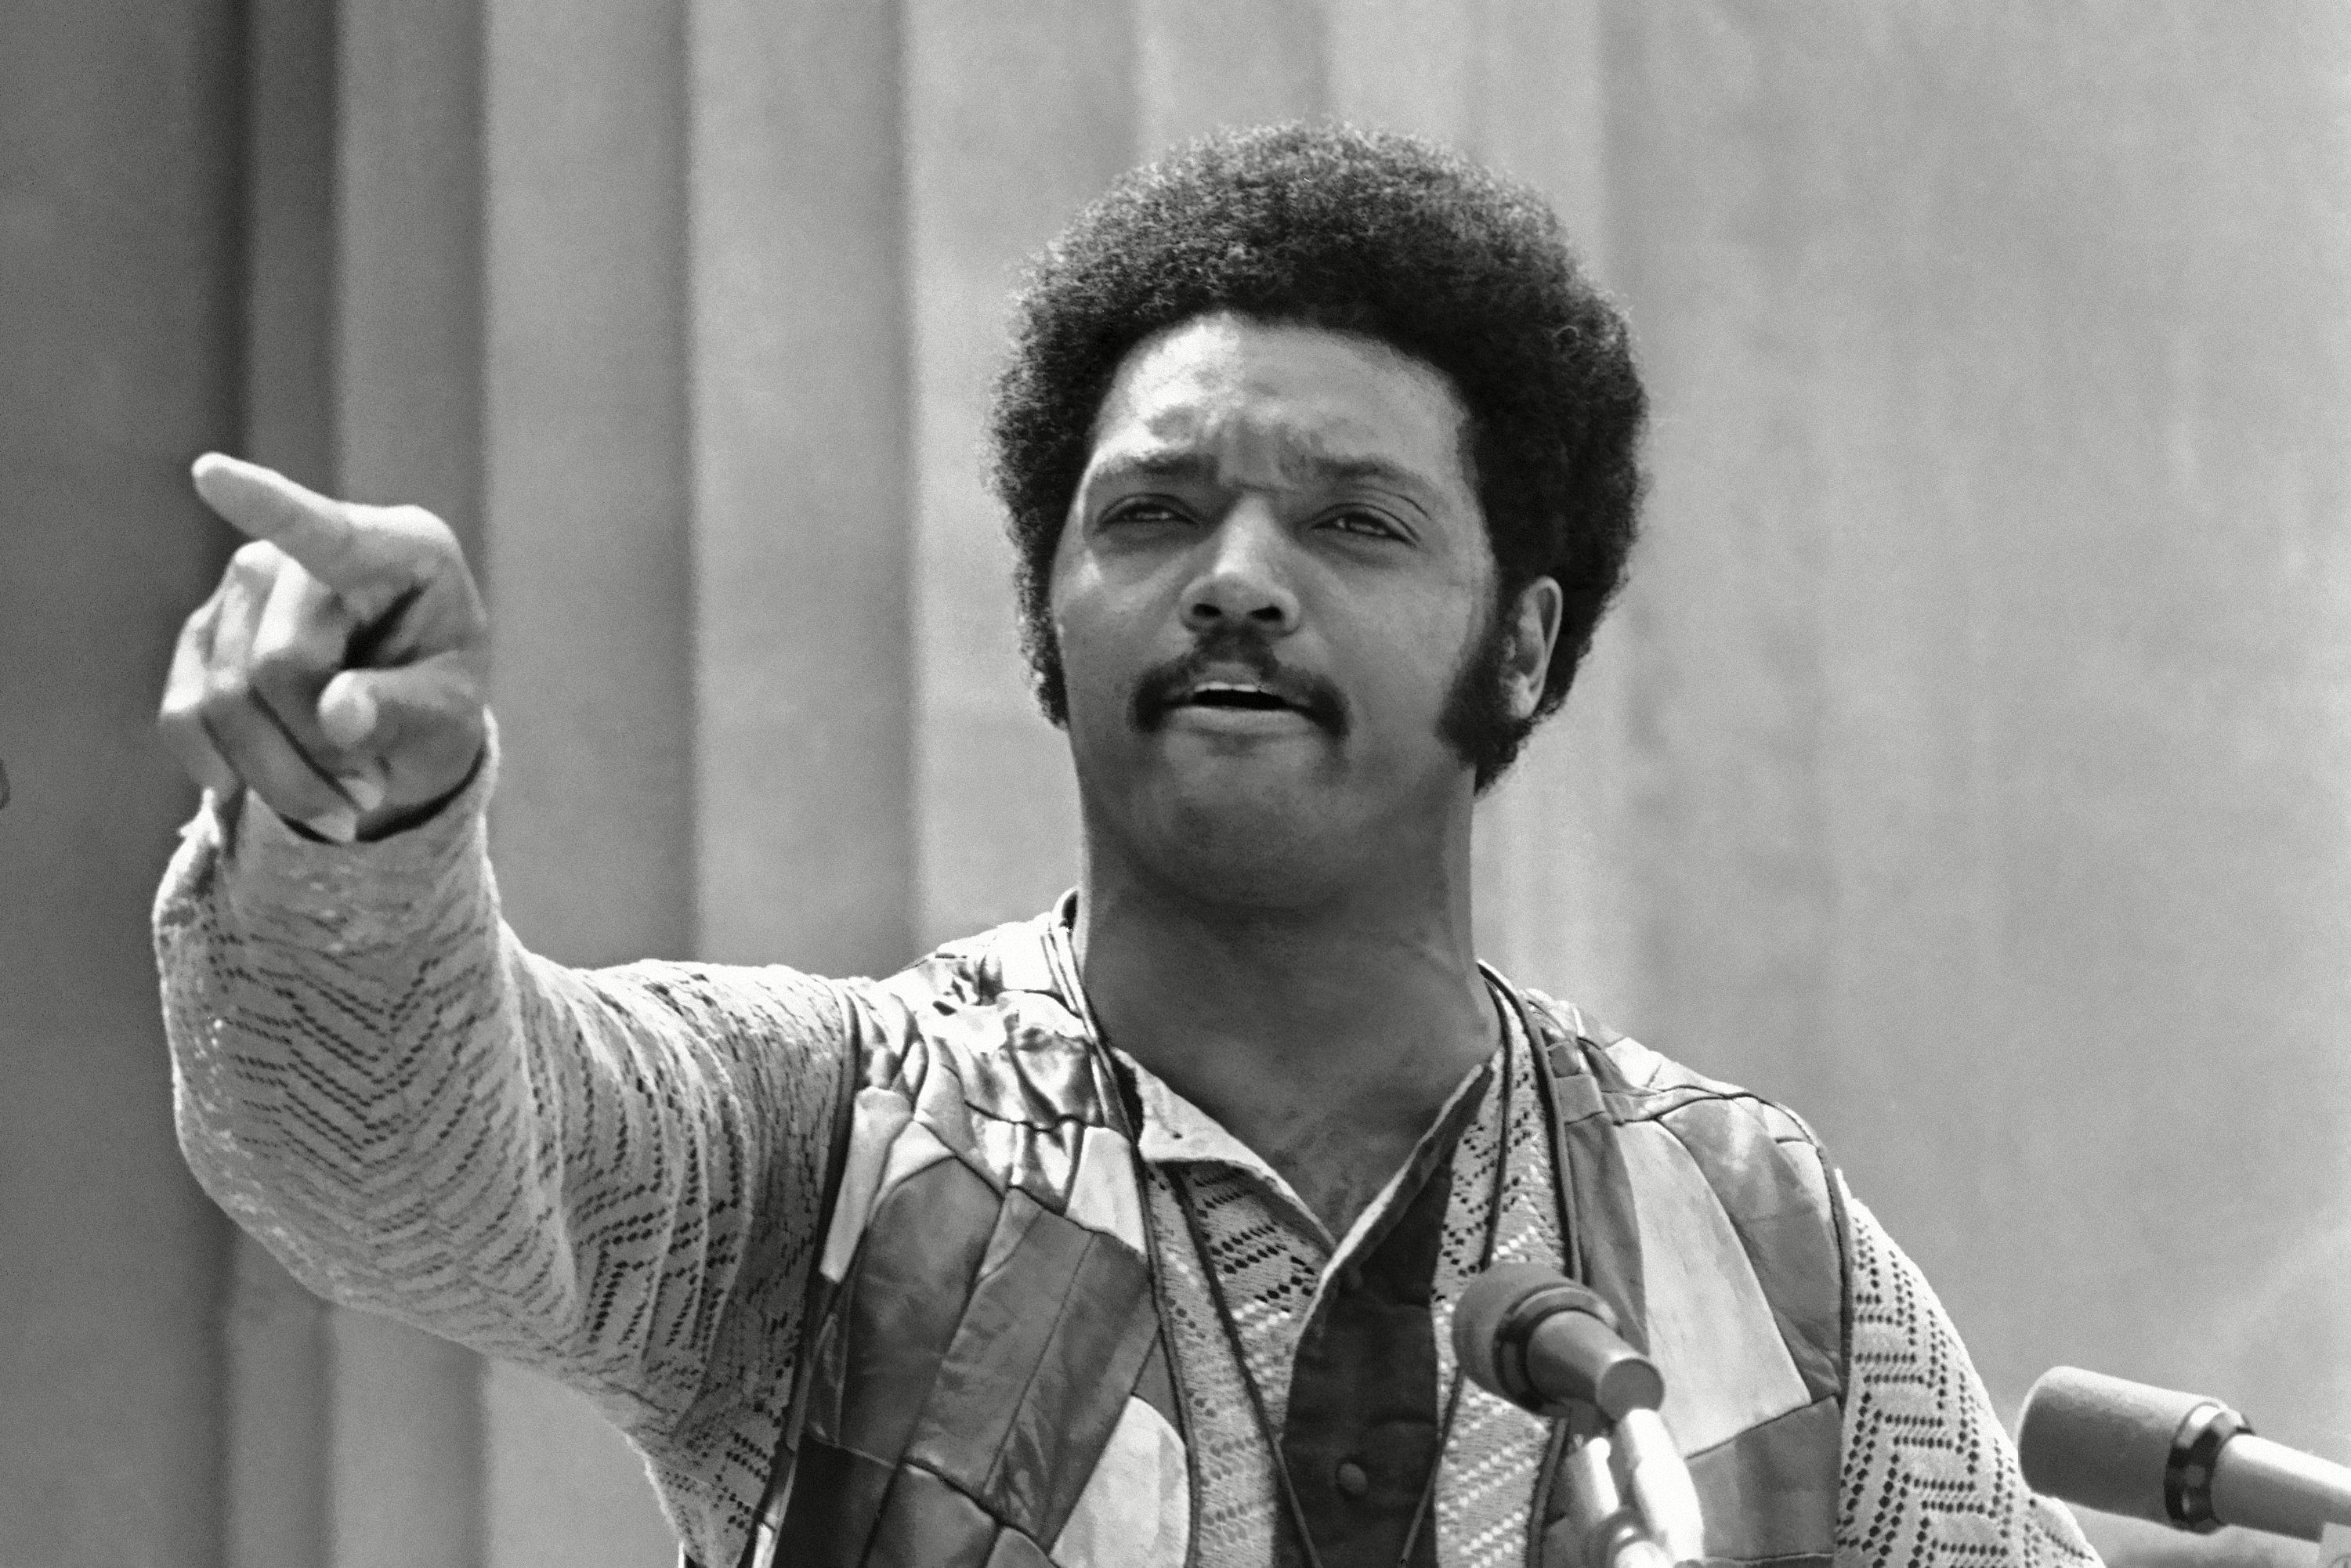 Mandatory Credit: Photo by Sal Veder/AP/Shutterstock (6634058a) Jesse Jackson of Southern Christian Leadership Conference speaks at a University of California rally at Greek Theater in Berkeley Jesse Jackson, Berkeley, USA